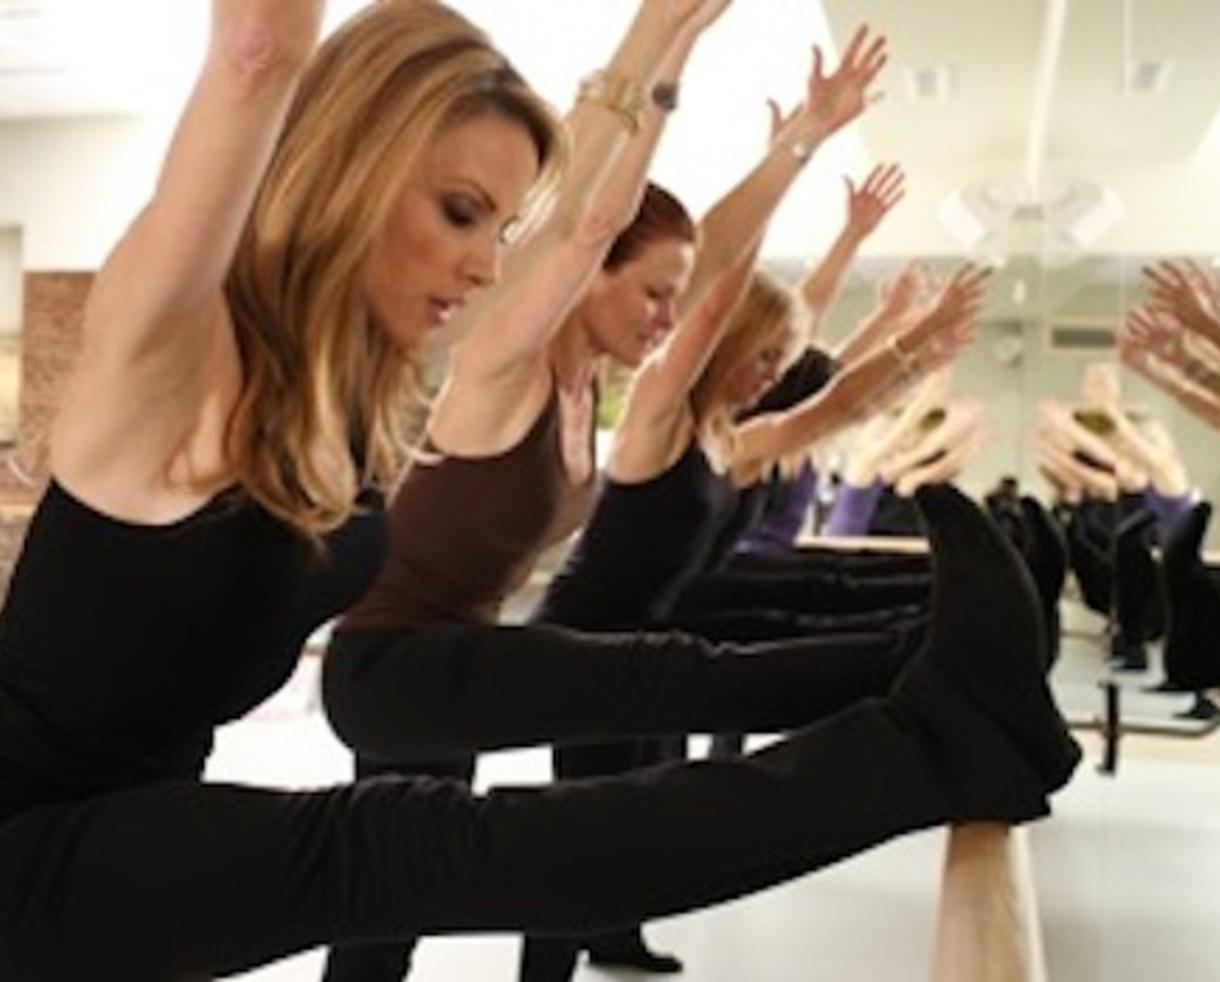 $42 for 3 Barre Fitness Classes at Go Figure Studio - Potomac (50% off)